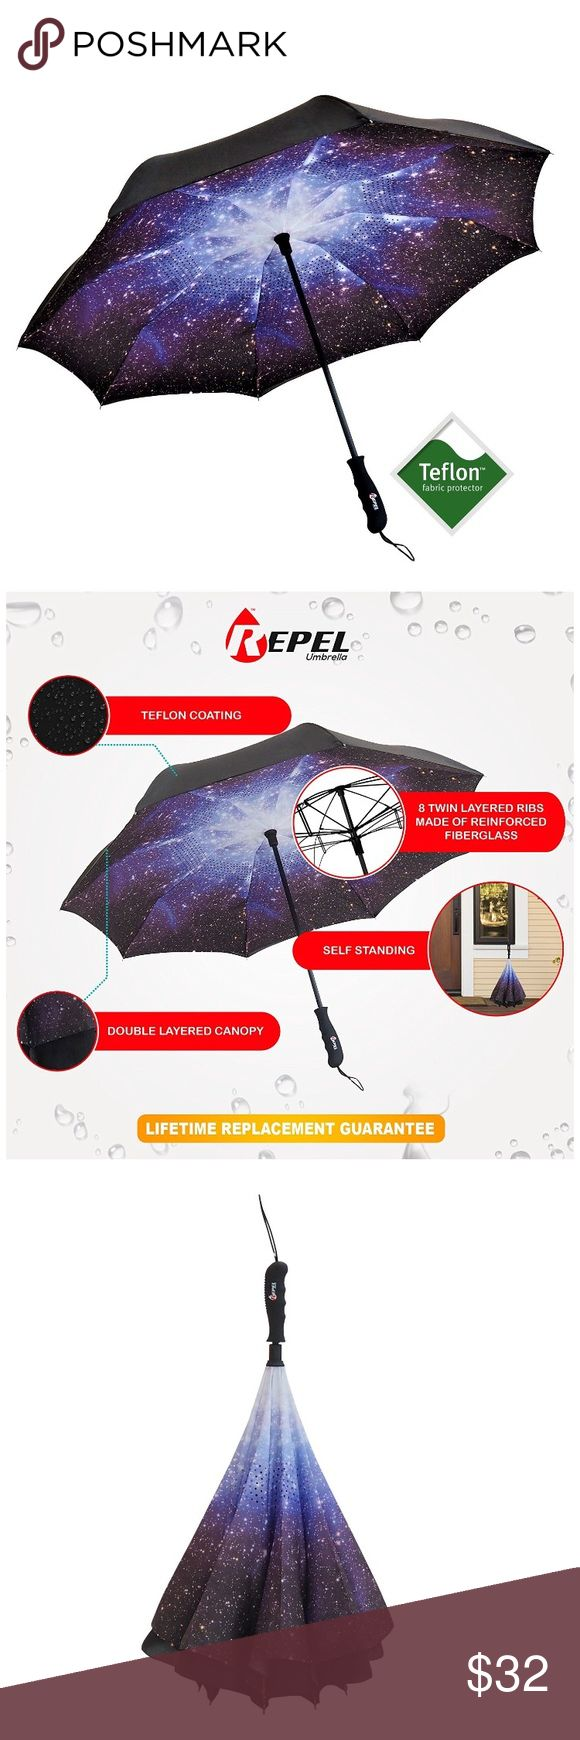 """Starry Double Teflon Reverse Folding Umbrella Repel sets the bar higher the state-of-the-art reverse folding umbrella innovative reverse folding frame allows for easy entry and exit from tight spaces like cars and doorways features 8 dual layered fiberglass ribs equipped with a """"fail-safe"""" technology that holds its own during extreme high gusts of wind coated with Teflon to protect against rain UV rays dirt Starry night color Dual layered This isn't a flimsy compact umbrella Large size The…"""